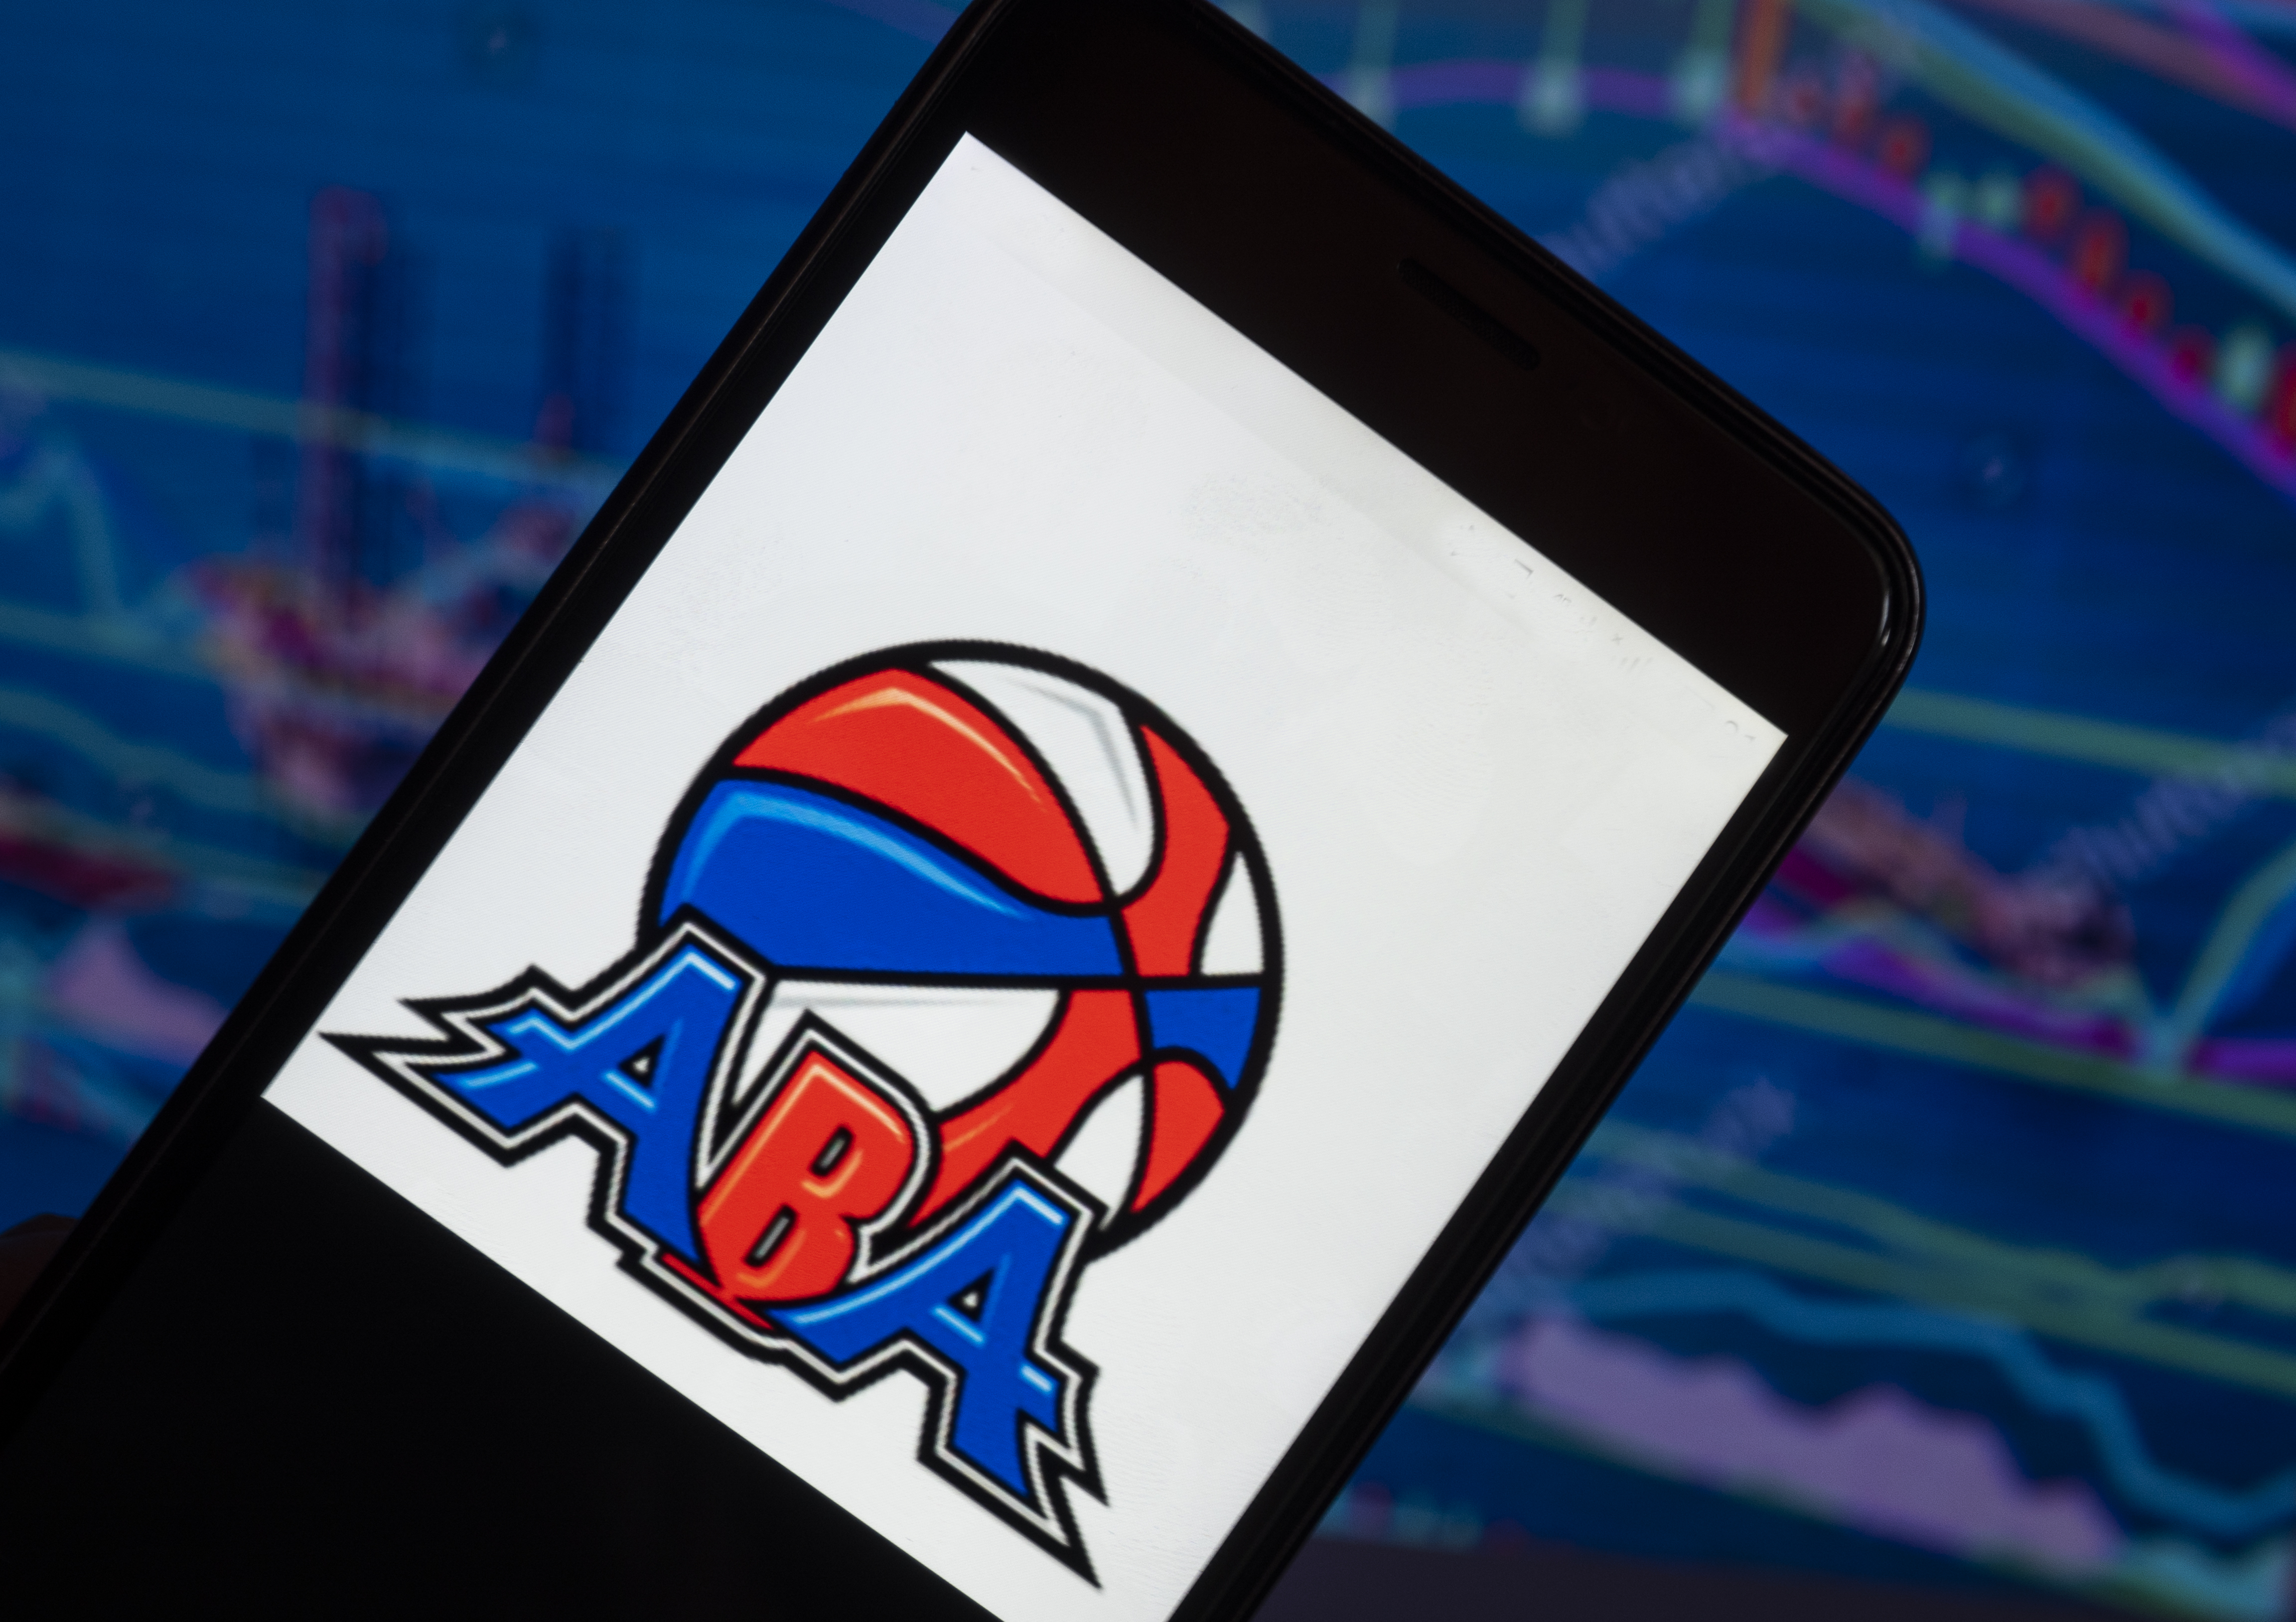 The American Basketball Association logo seen displayed on a